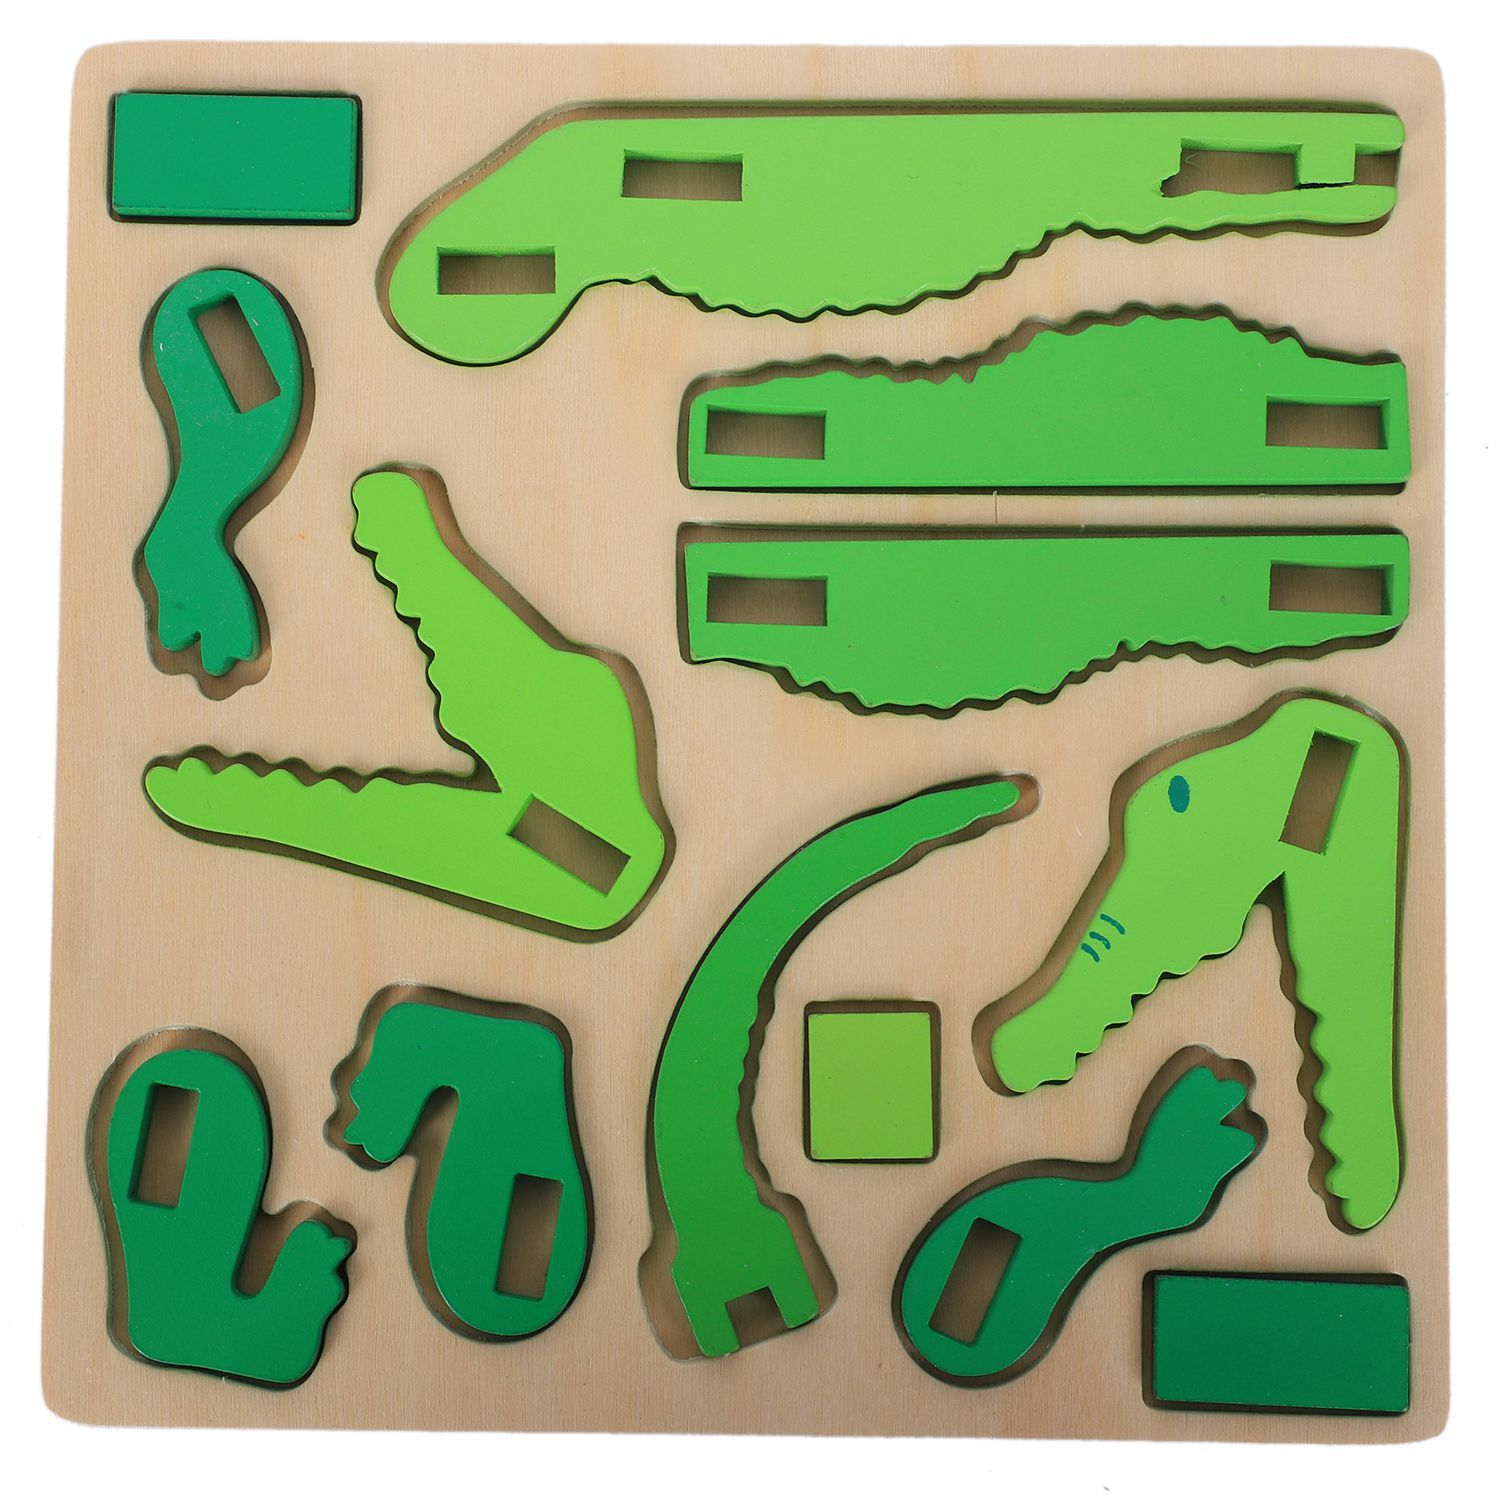 MWZ Cute Animal Wooden 3D Puzzle Toys MWZ for Children Baby Early Learning Kids Intelligence Educational Cartoon Wood Toy, croMWZ Cute Animal Wooden 3D Puzzle Toys MWZ for Children Baby Early Learning Kids Intelligence Educational Cartoon Wood Toy, cro